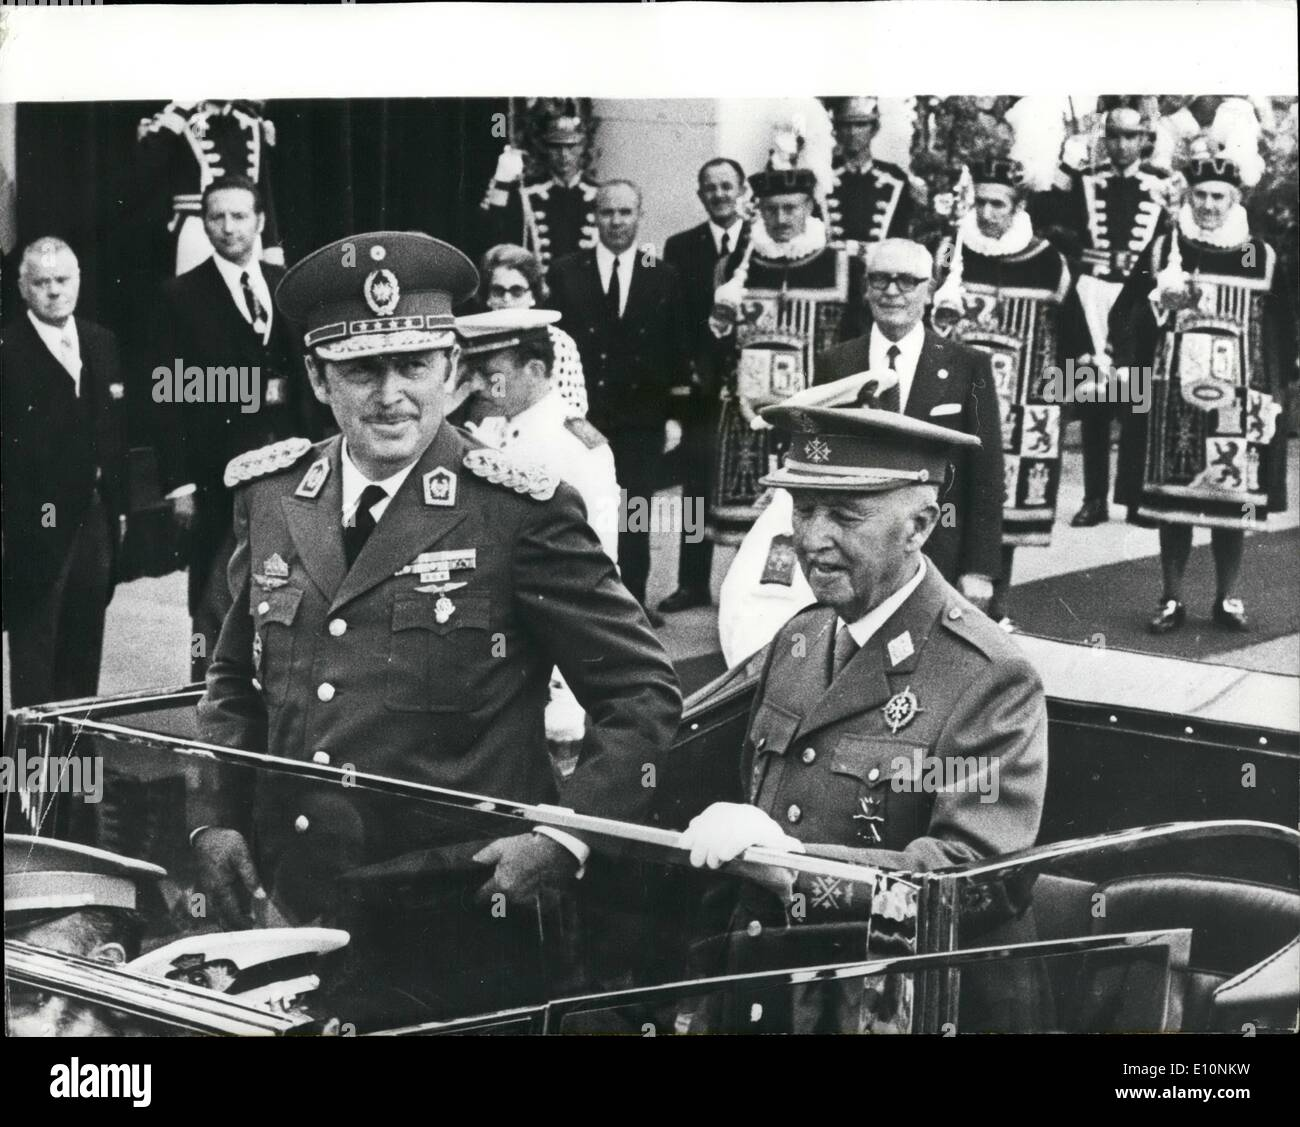 jul 07 1973 president of paraguay in madrid photo shows mr